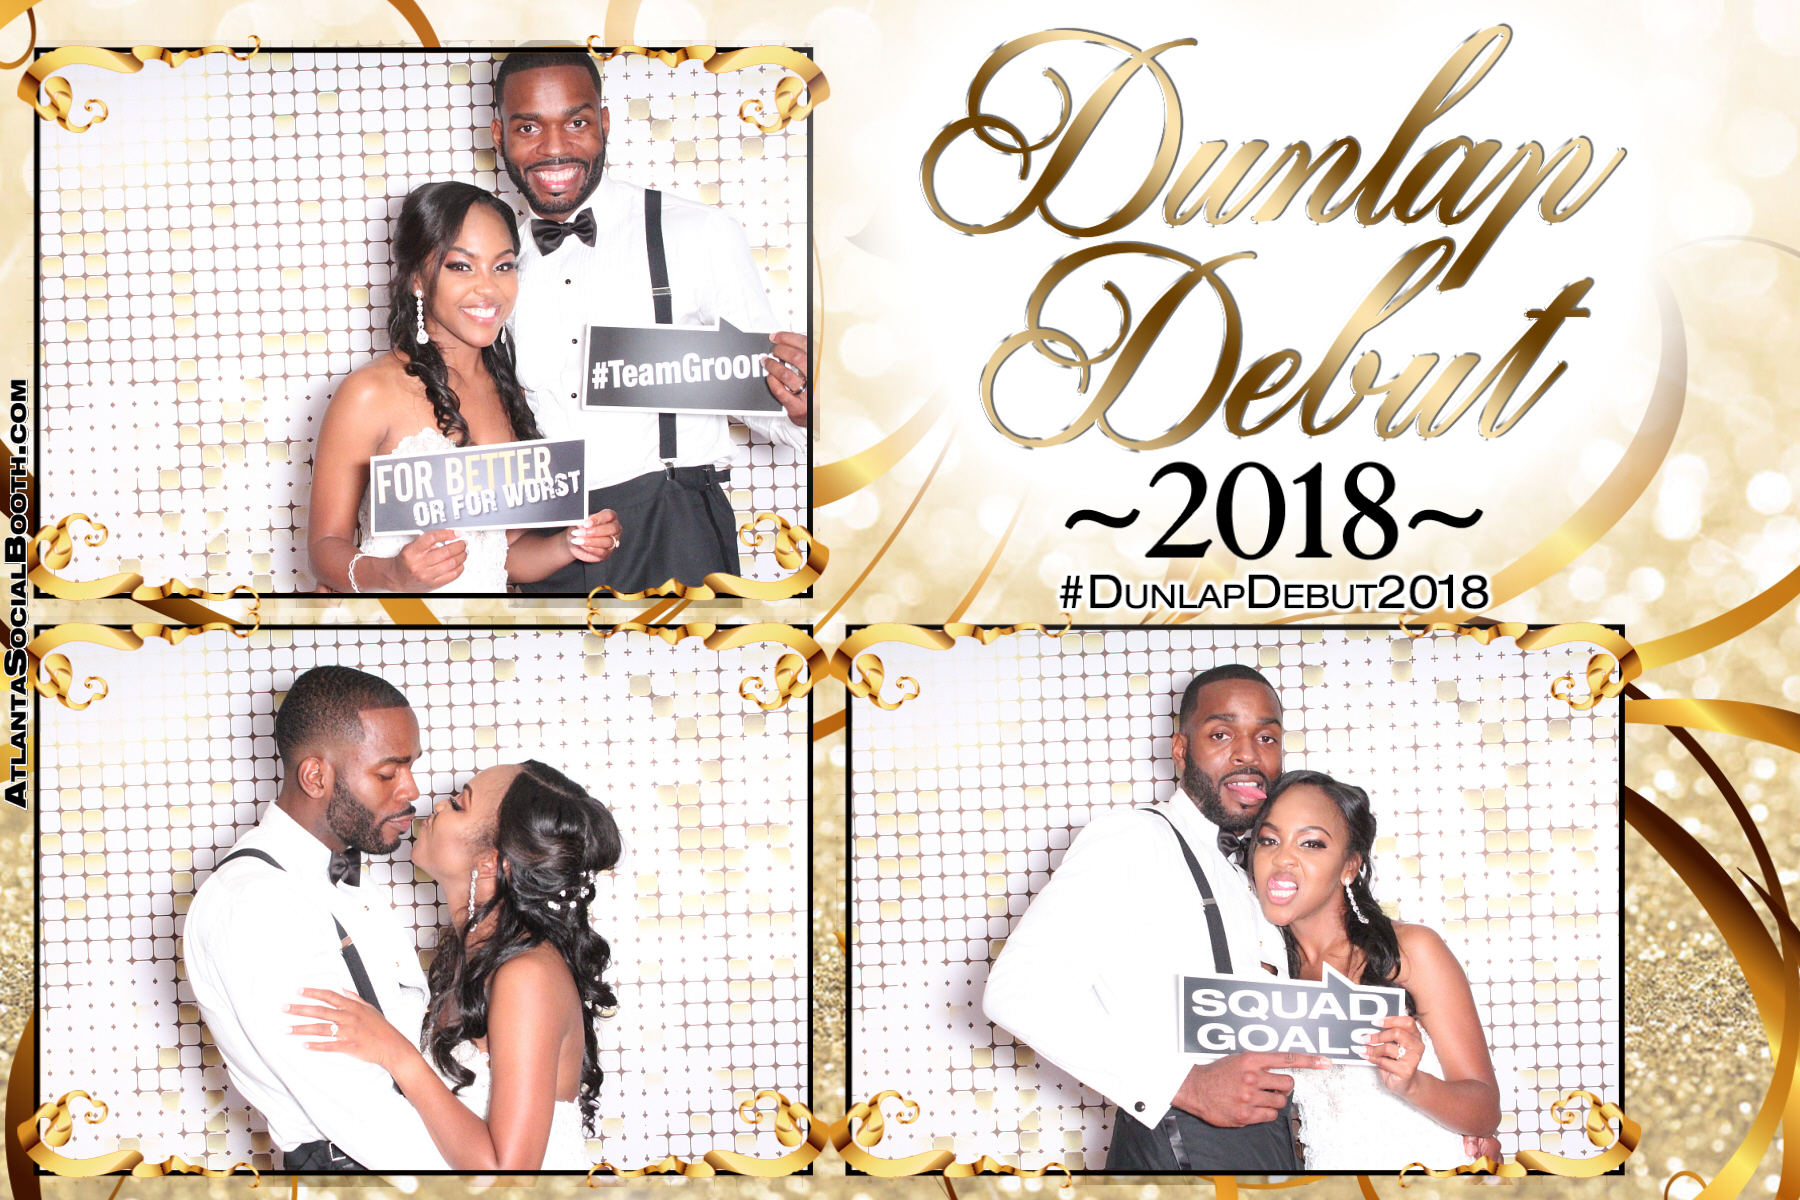 Dunlap Debut Wedding